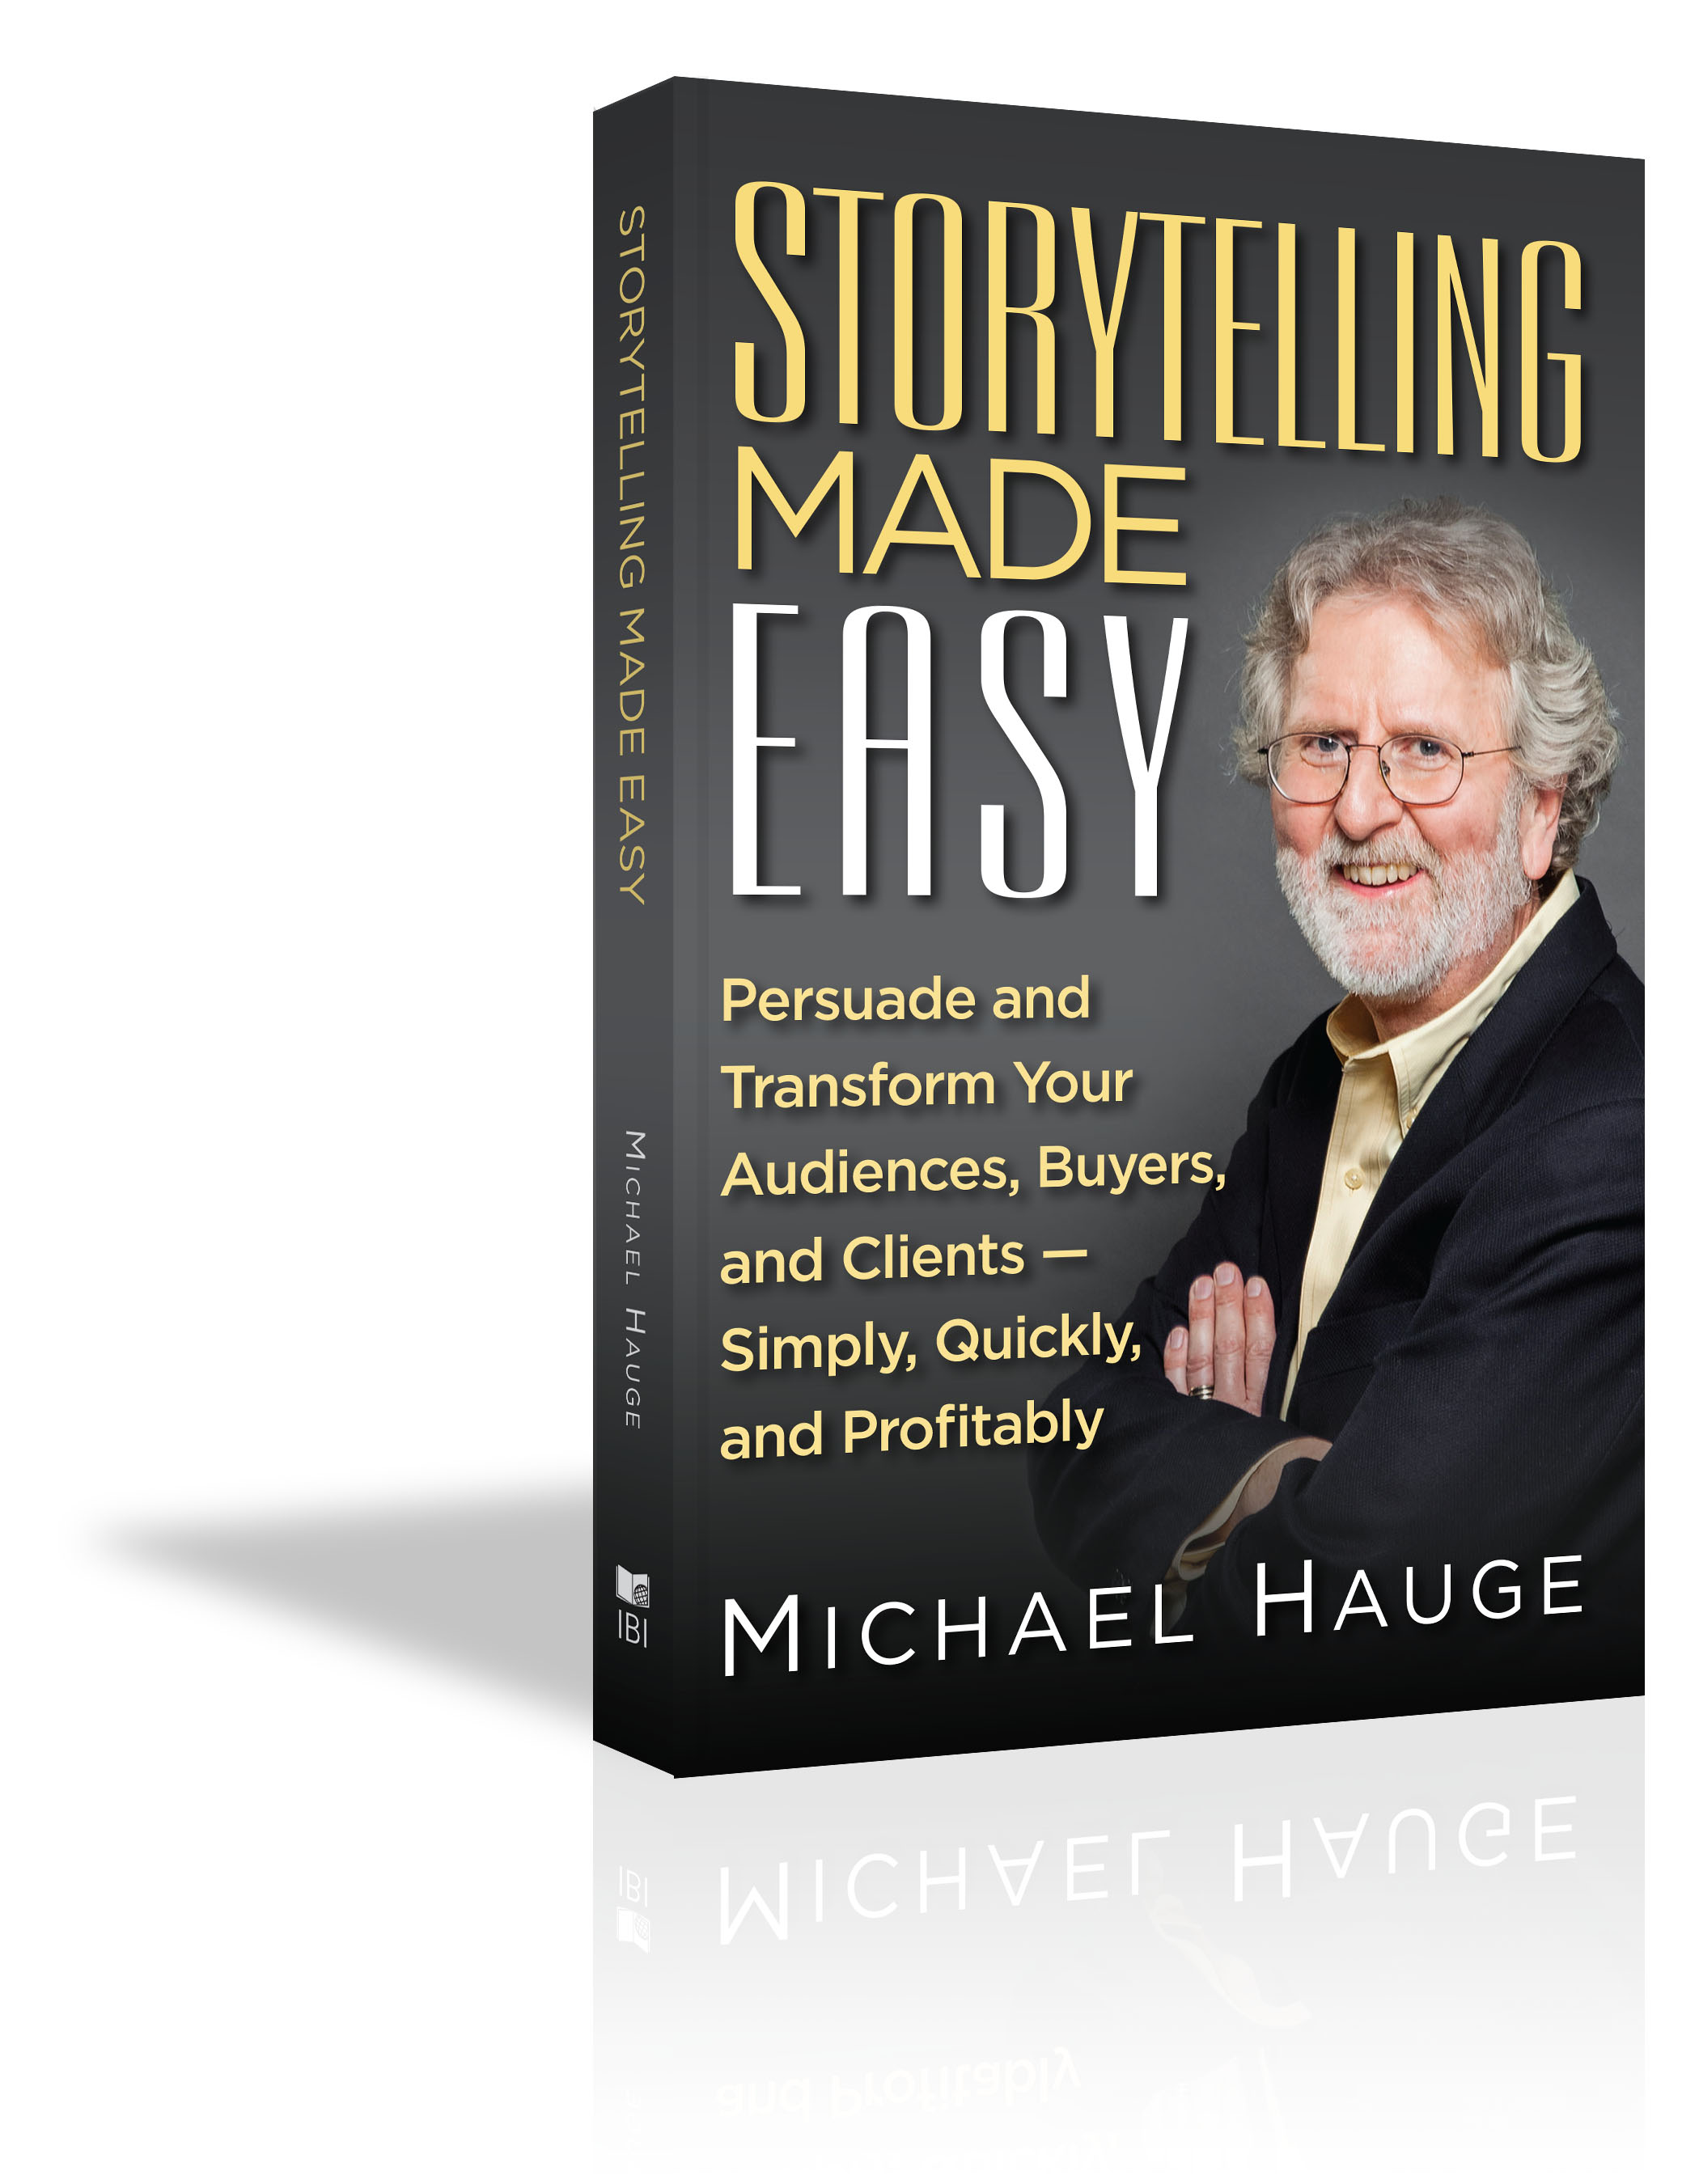 Storytelling Made Easy - Michael Hauge